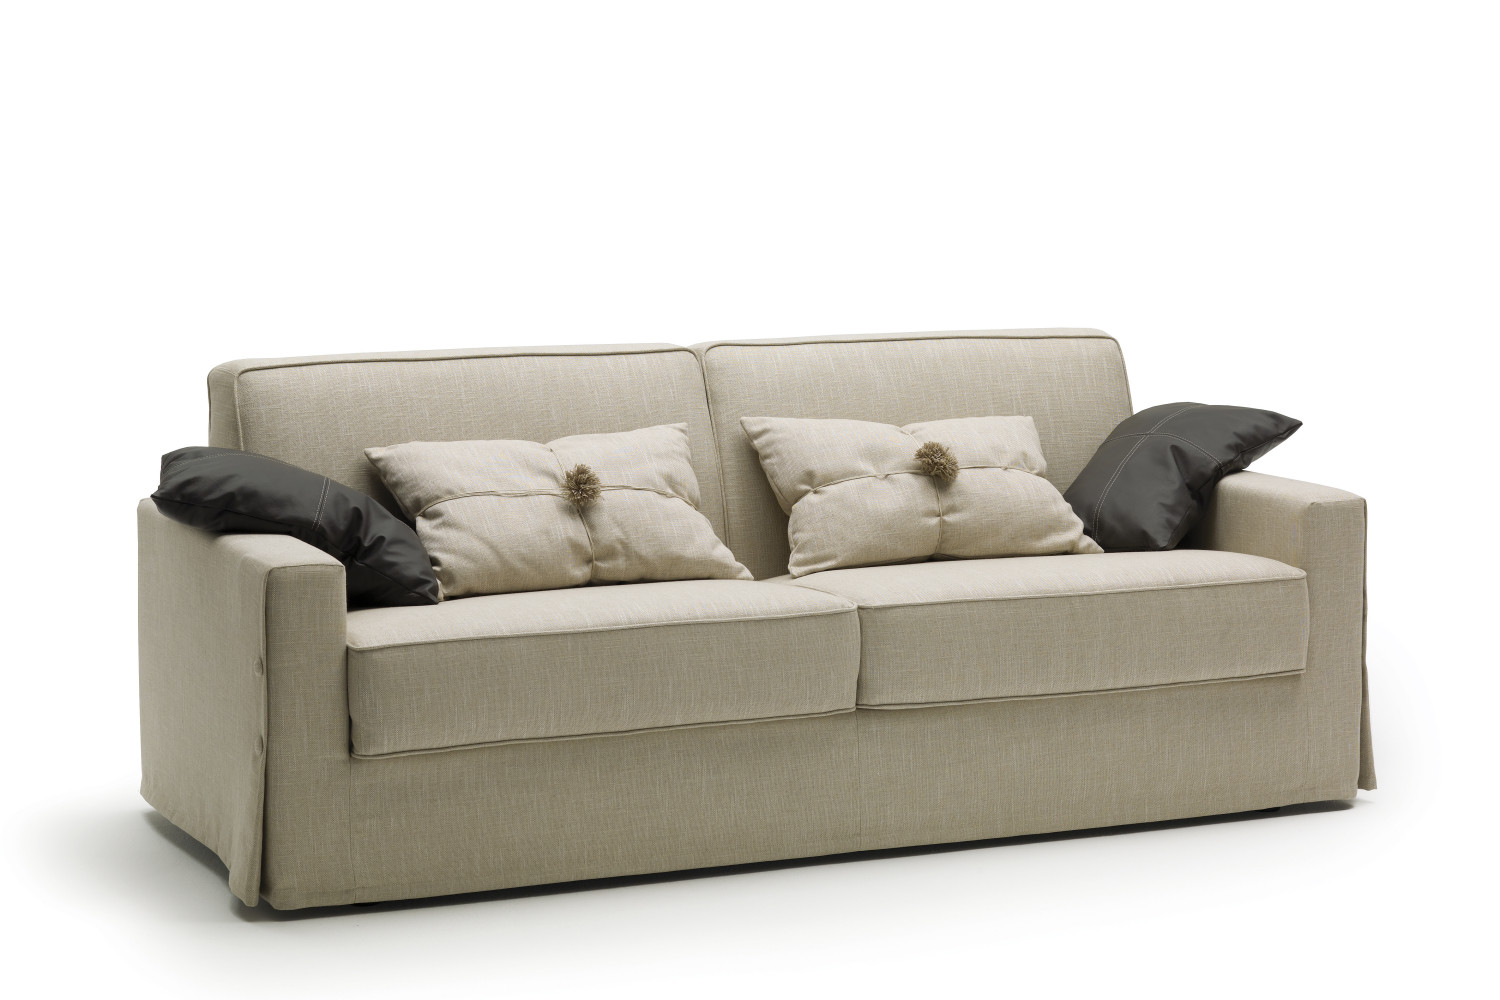 Canap convertible couchage quotidien taylor - Canape convertible couchage quotidien but ...